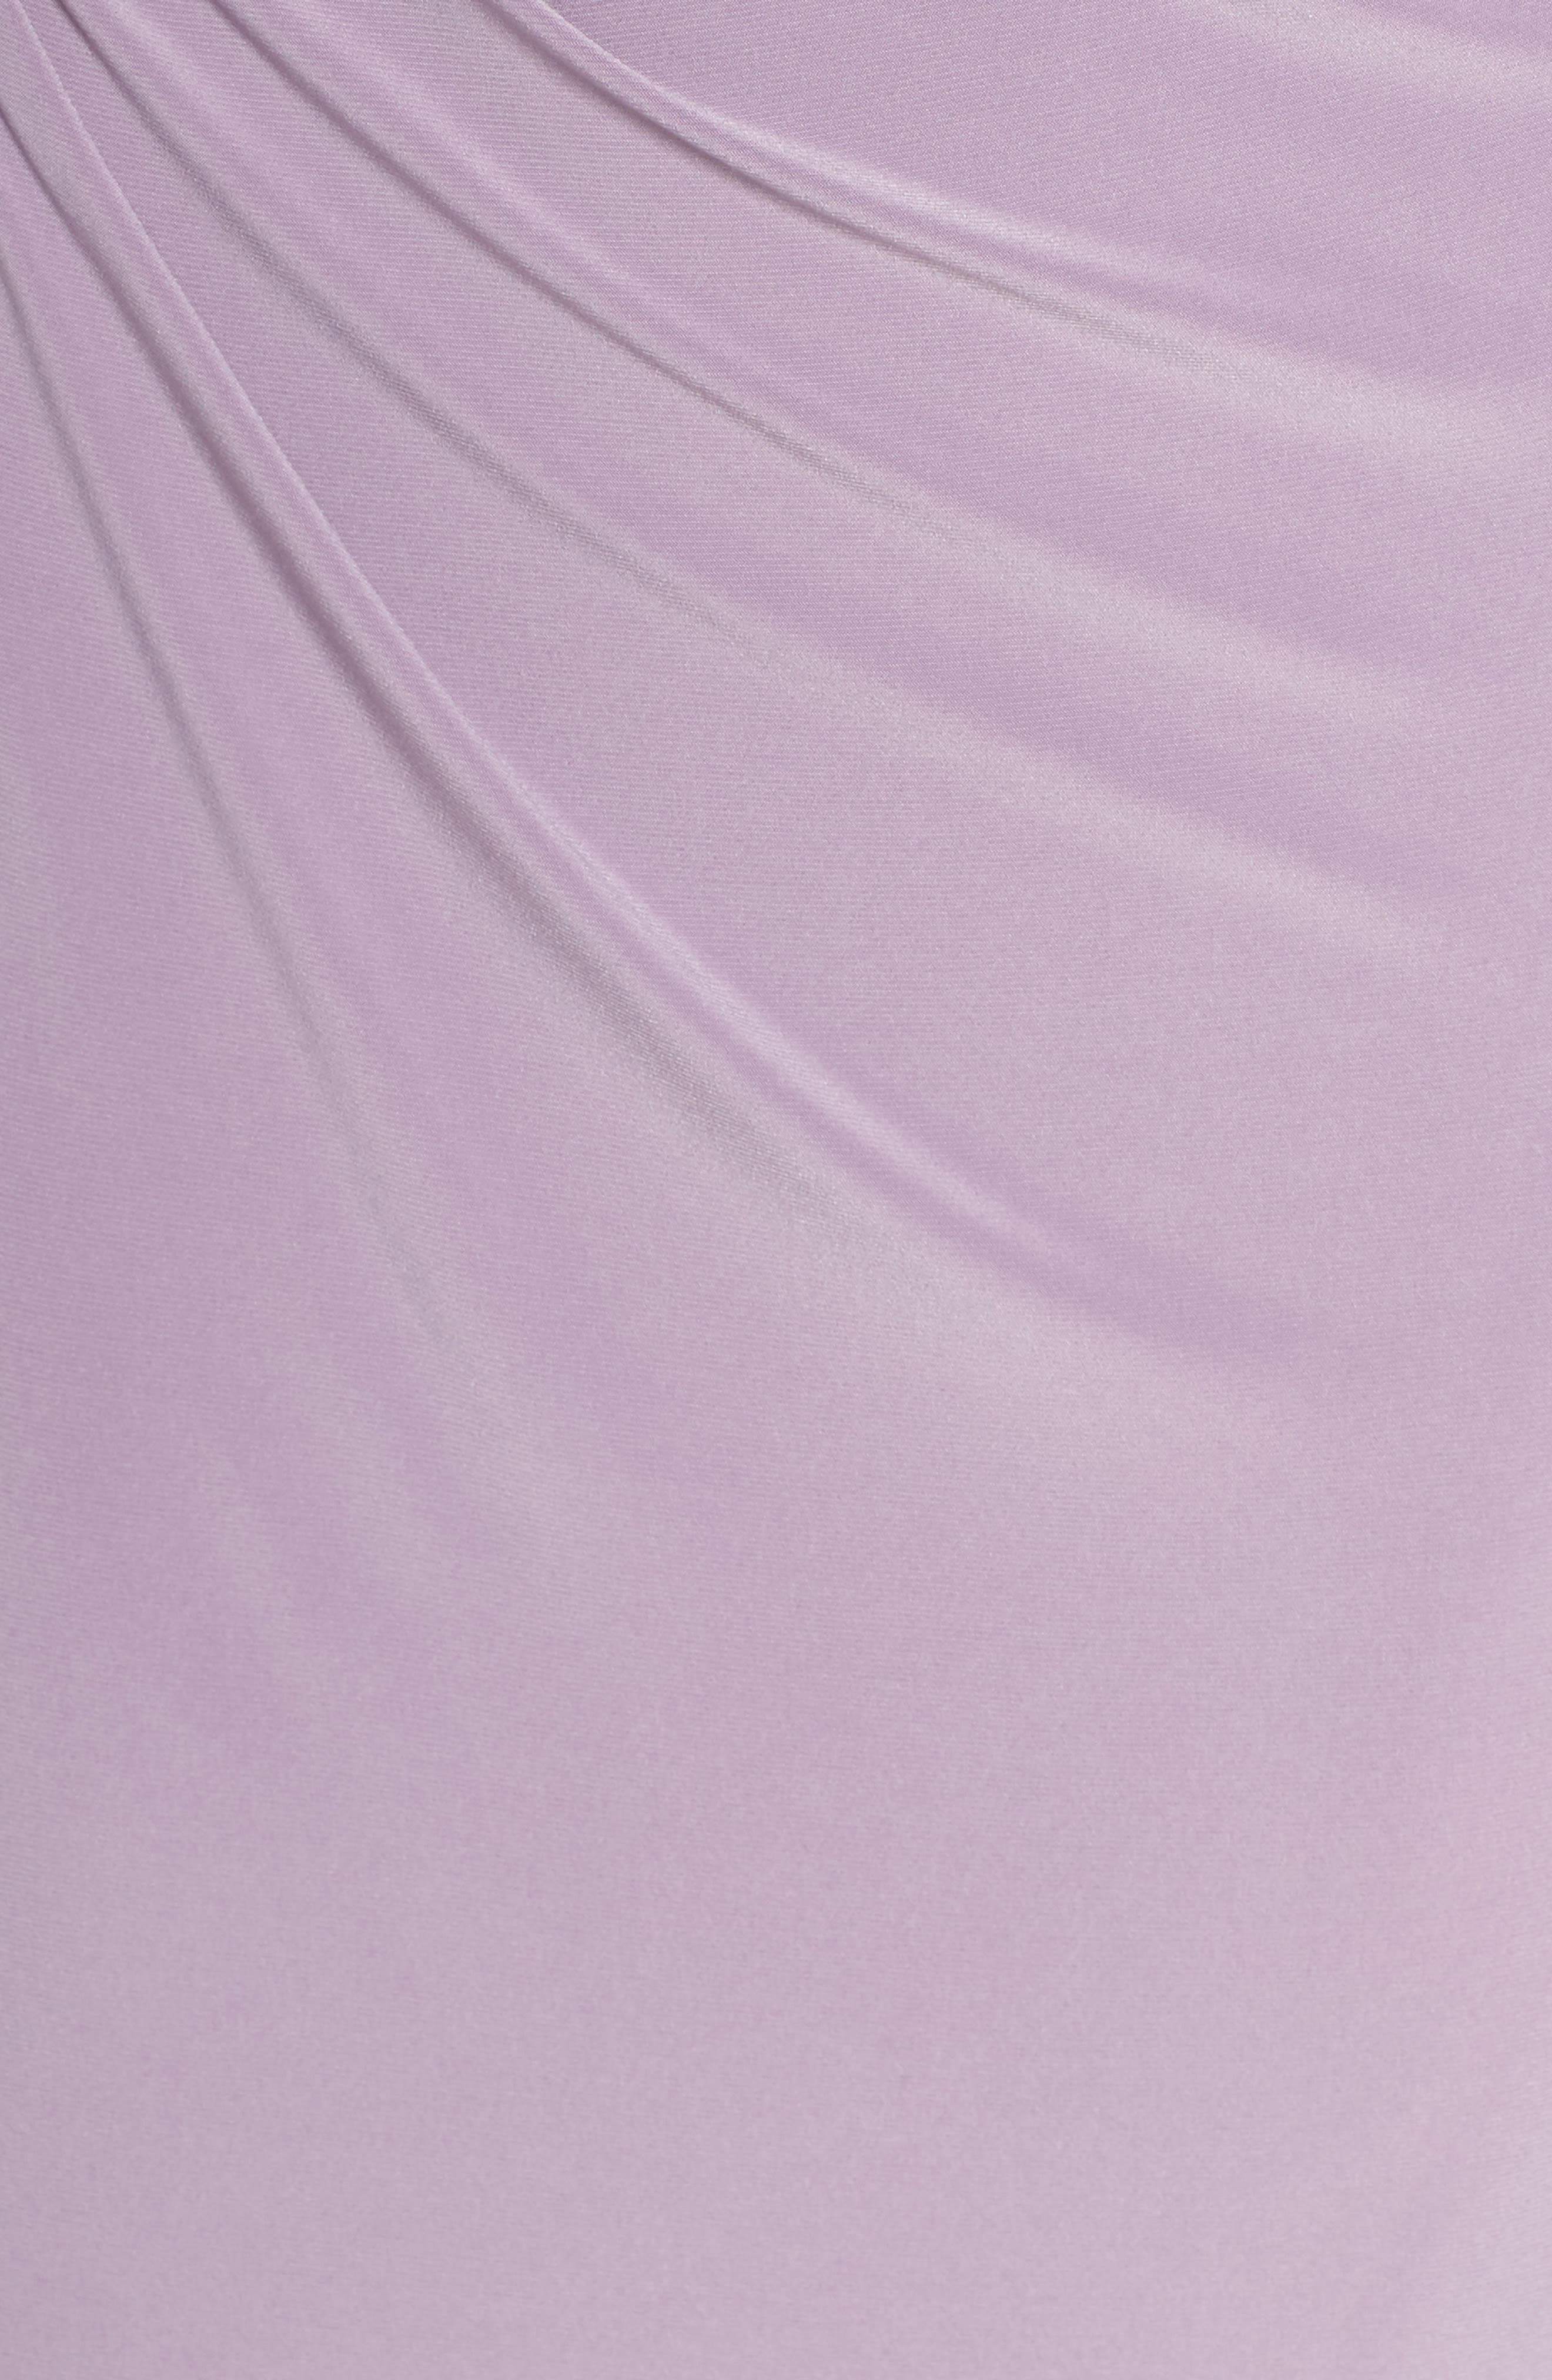 VINCE CAMUTO,                             Embellished Sleeve Ruched Evening Dress,                             Alternate thumbnail 6, color,                             LILAC